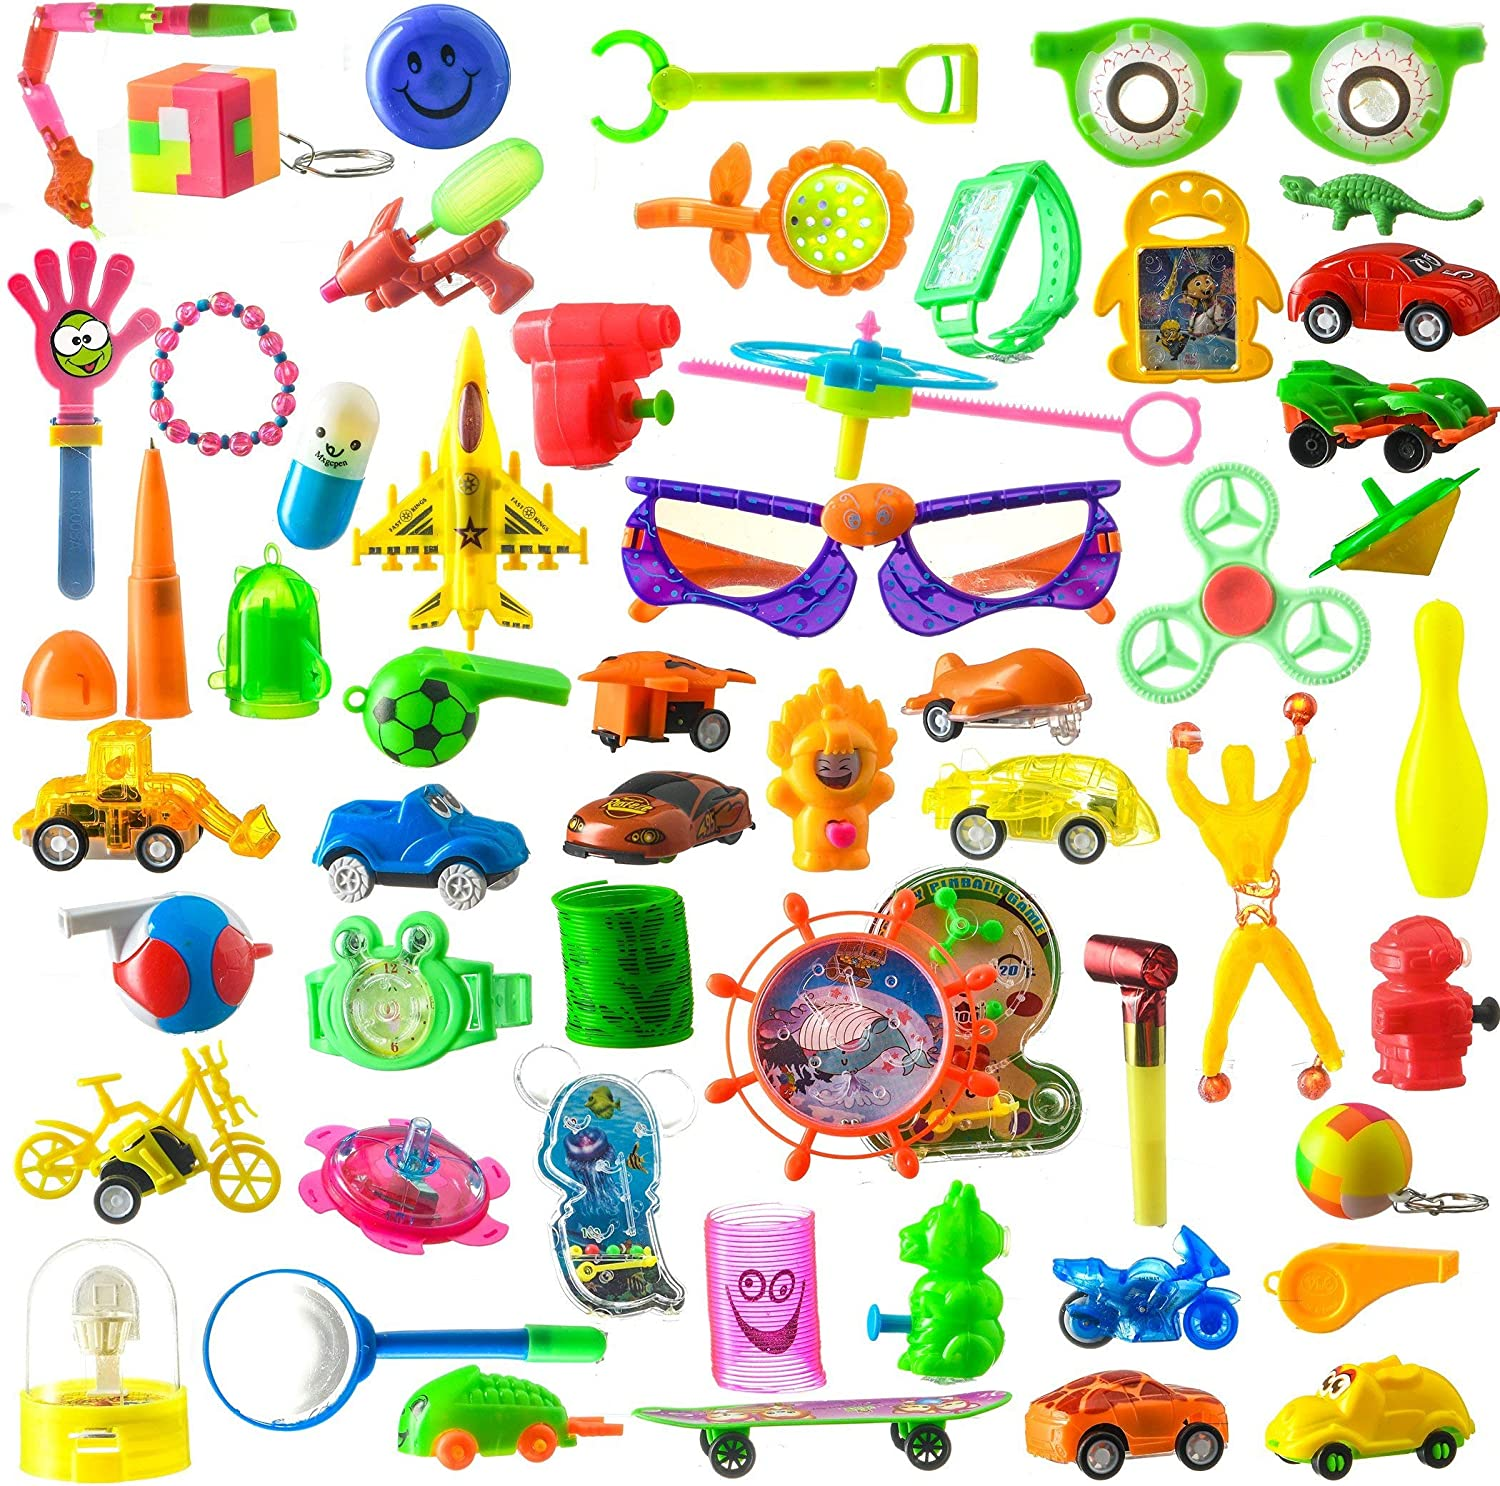 100 Piece Toy Assortment Stocking Stuffers (Includes  Wall Climbers , Glitter Megaphone Whistles , Miniature Playing Cards , Mini Cups and Ball Games , Plastic Bathtub Boats, Metal Police Badges , 3'' Parachutes , Yo Yo's , Rings, Finger Traps , and Other